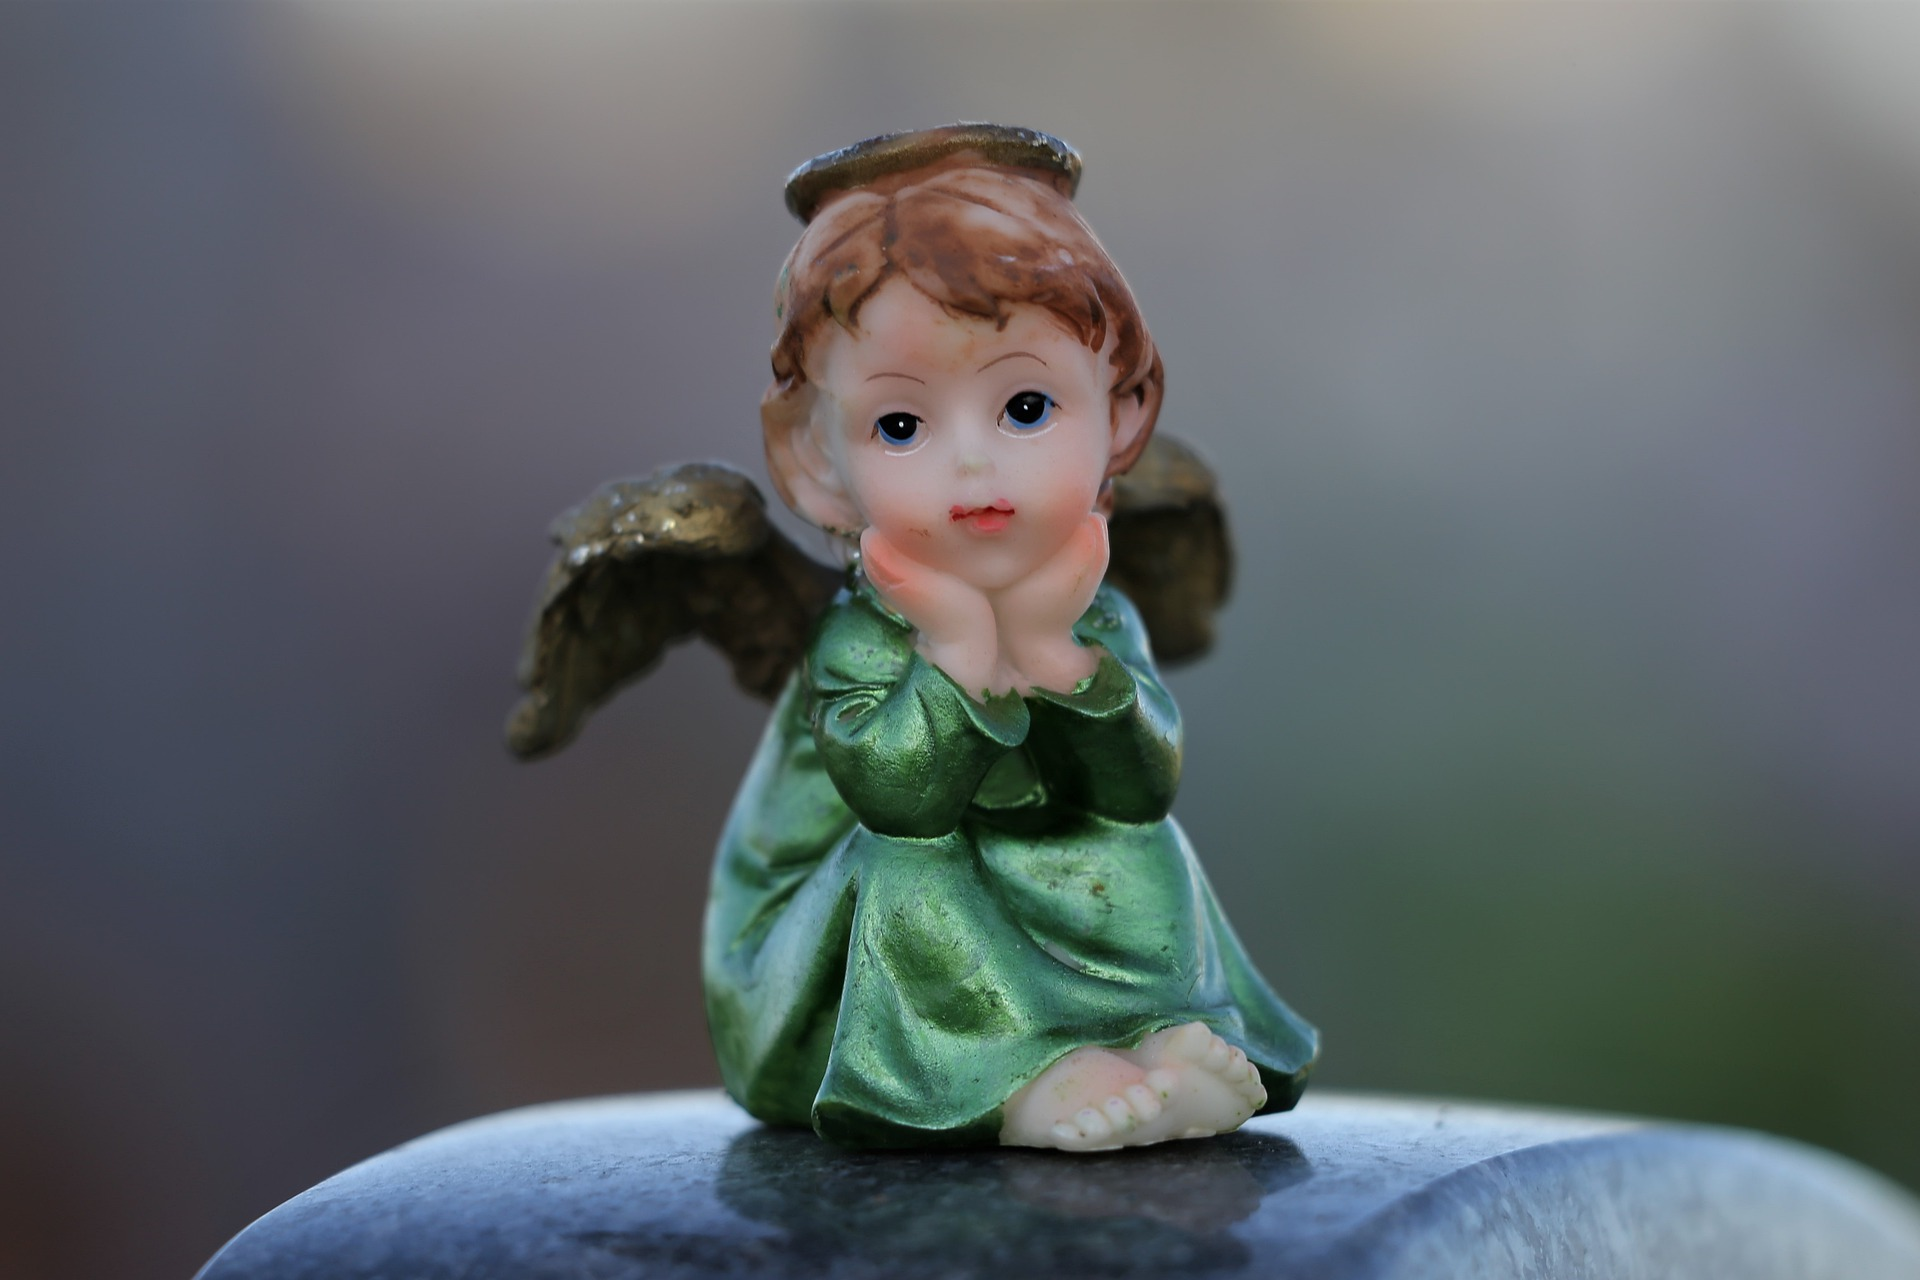 little-angel-on-childs-grave-4495385_1920_pixaby.jpg